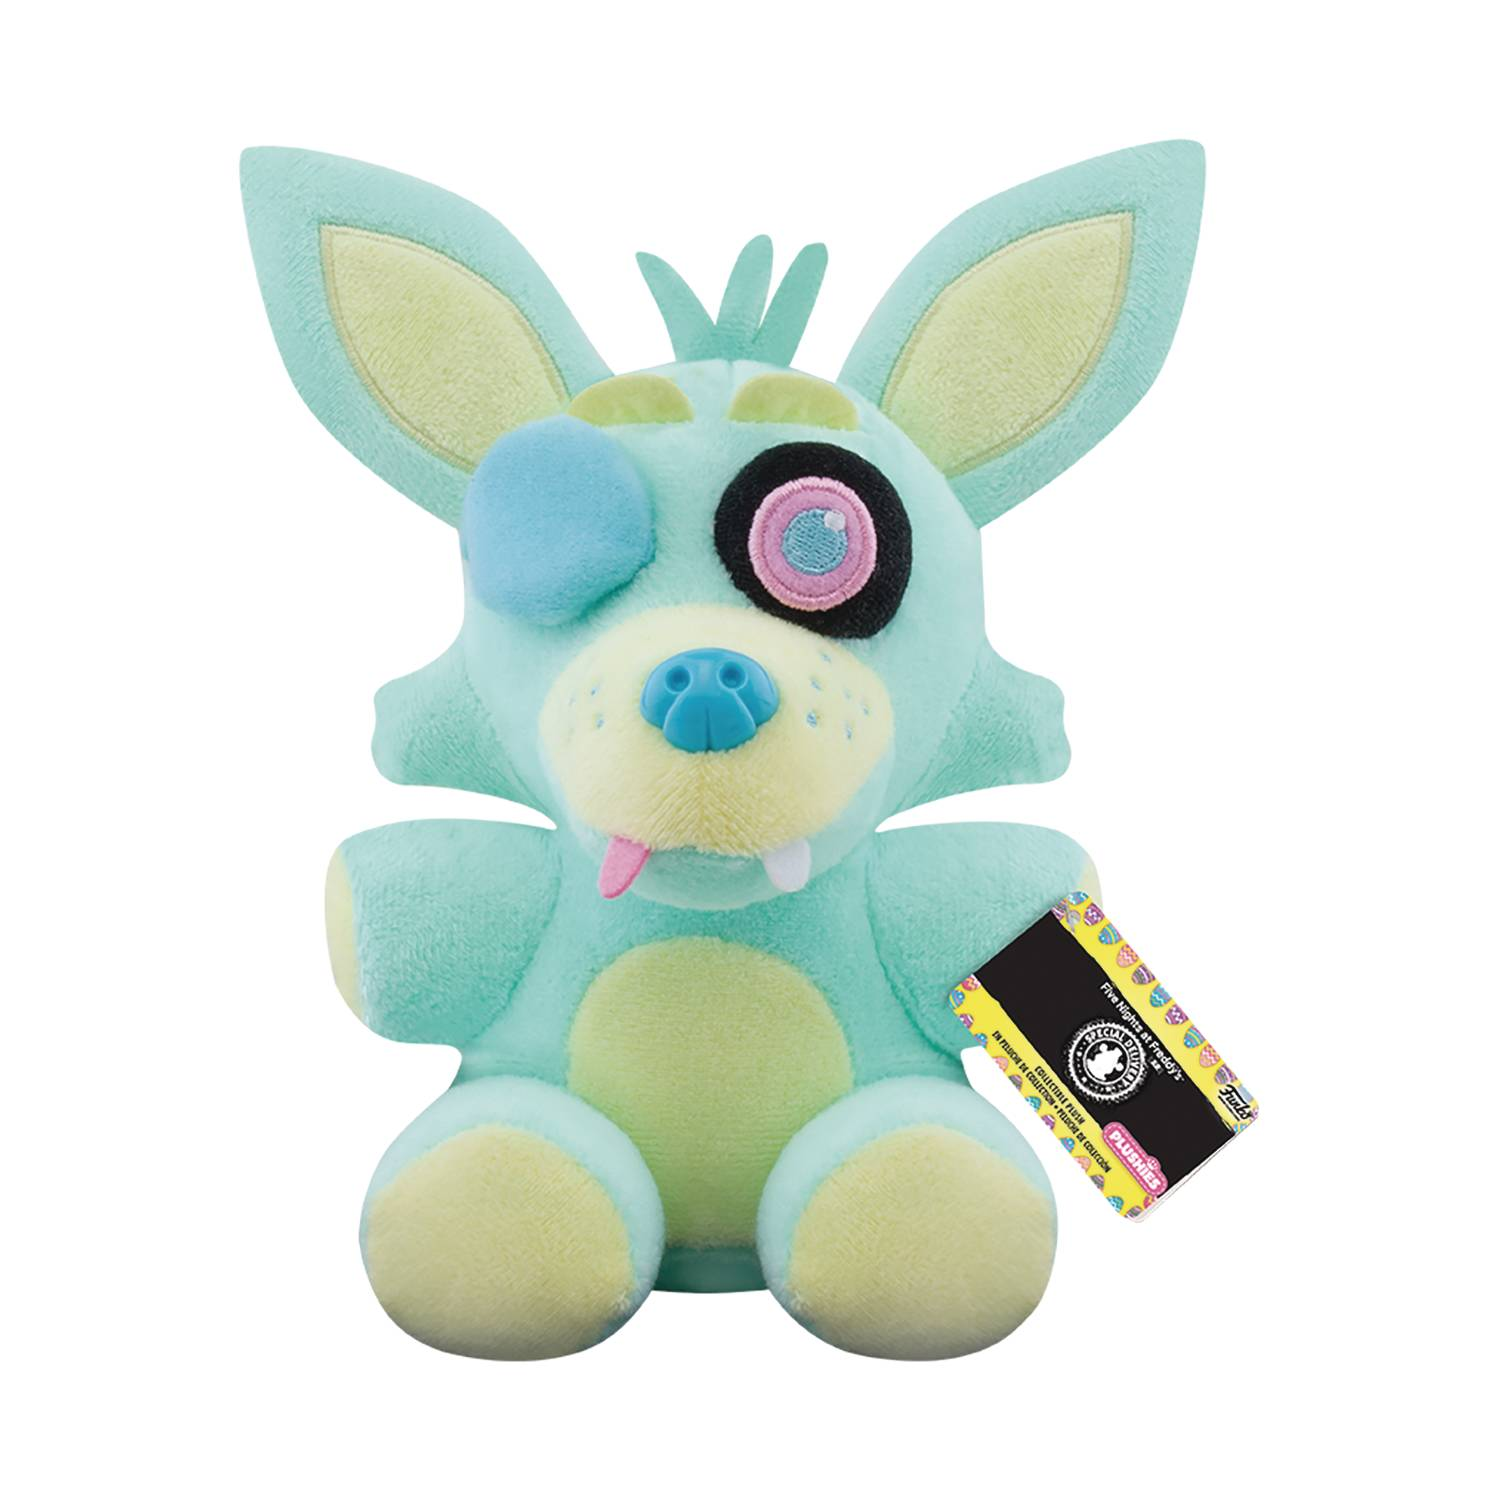 FNAF SPRING COLORWAY FOXY GR PLUSH